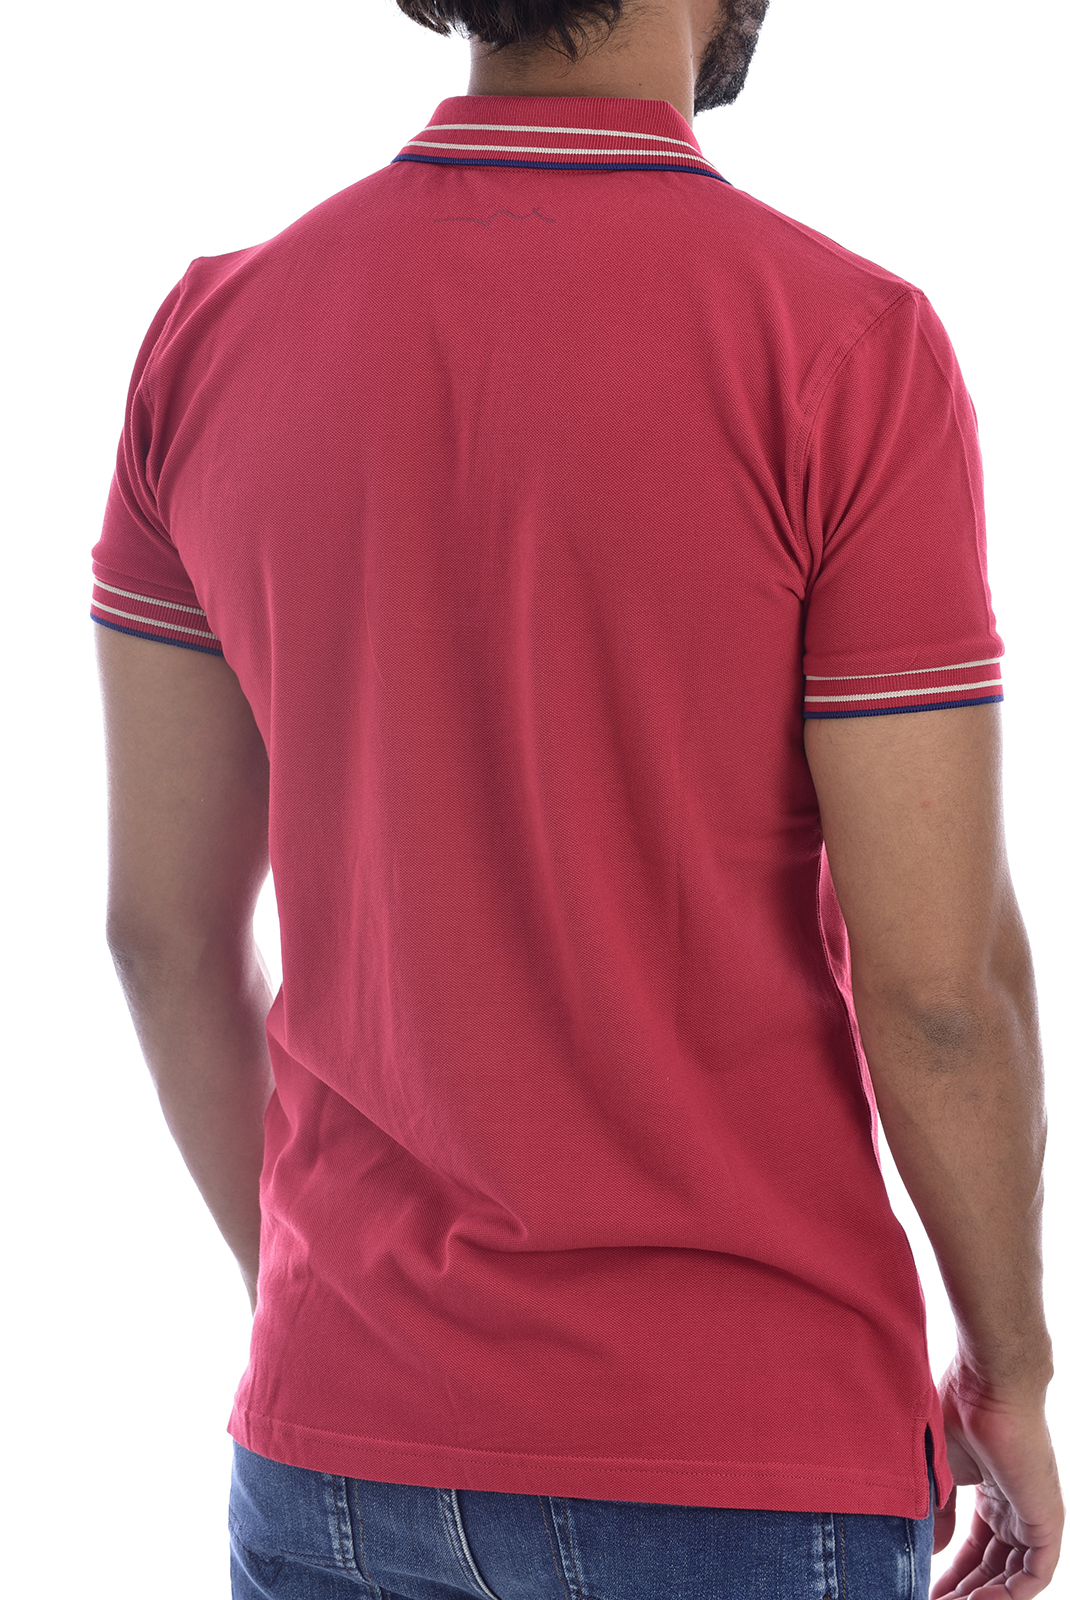 Polos  Teddy smith 11306339DS20 761A-AMERICAN RED